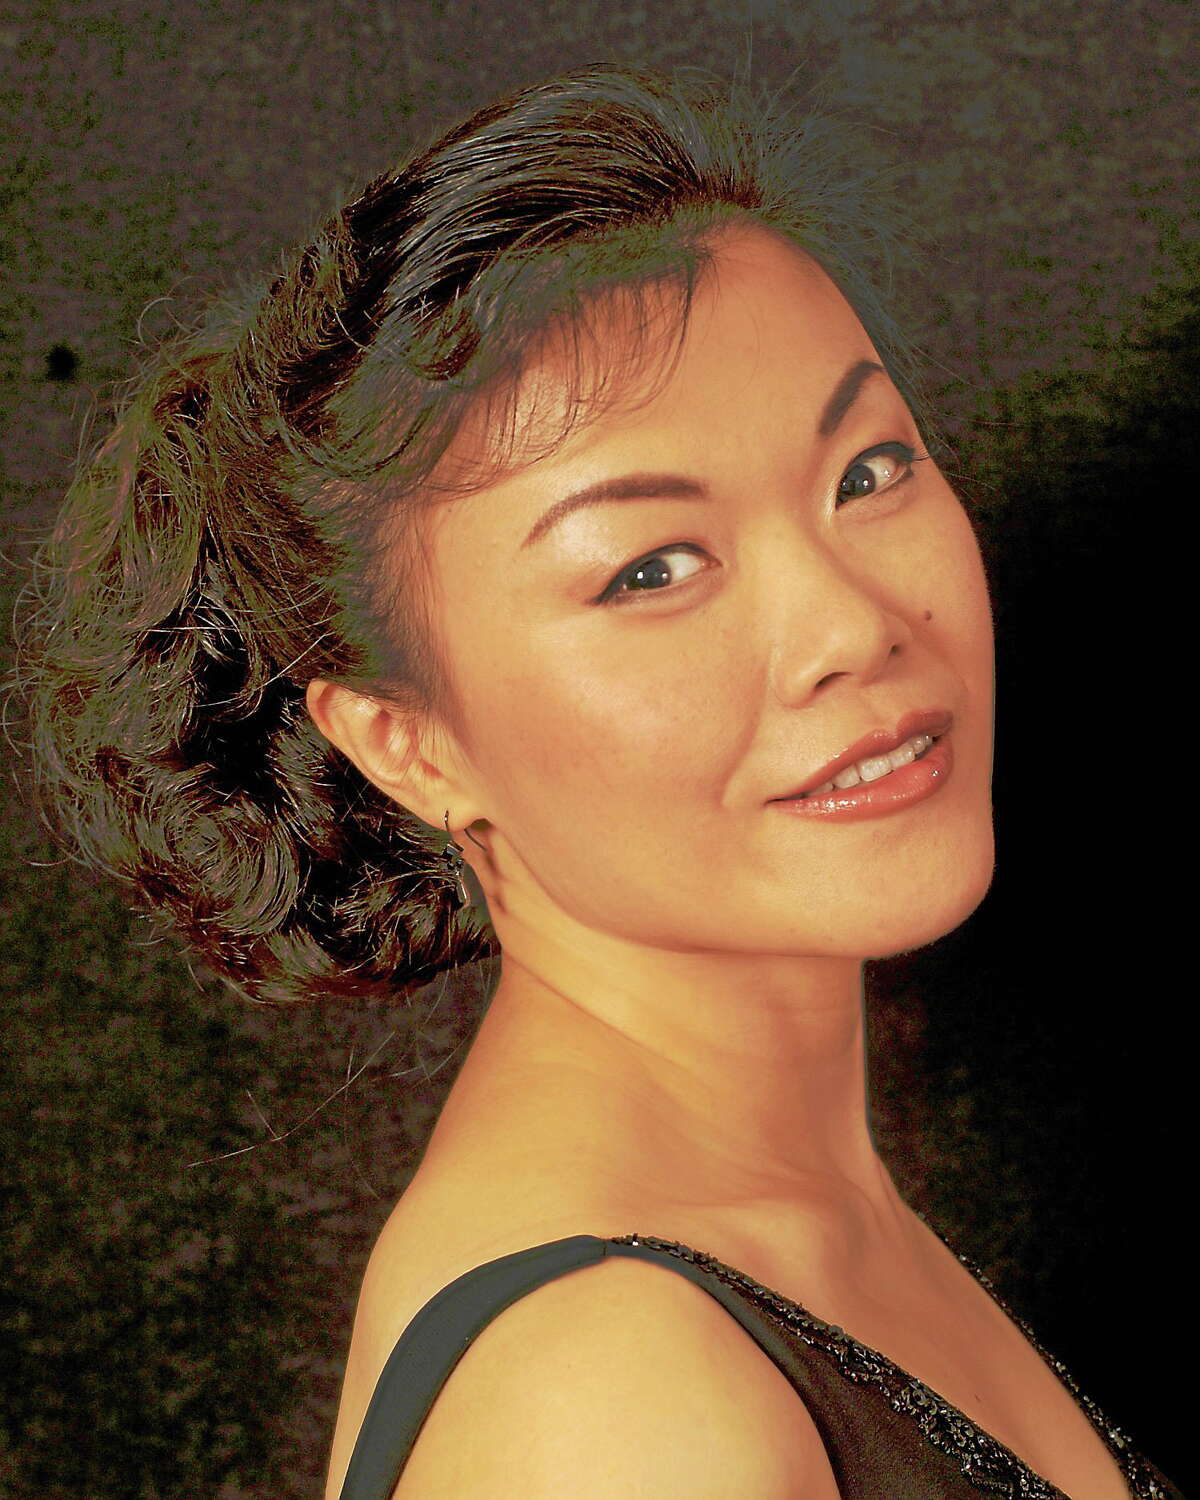 Soprano Hyunah Yu returns to The Kate to perform music by Schubert and Schumann on the Chestnut Hill Concerts series on Aug. 15.